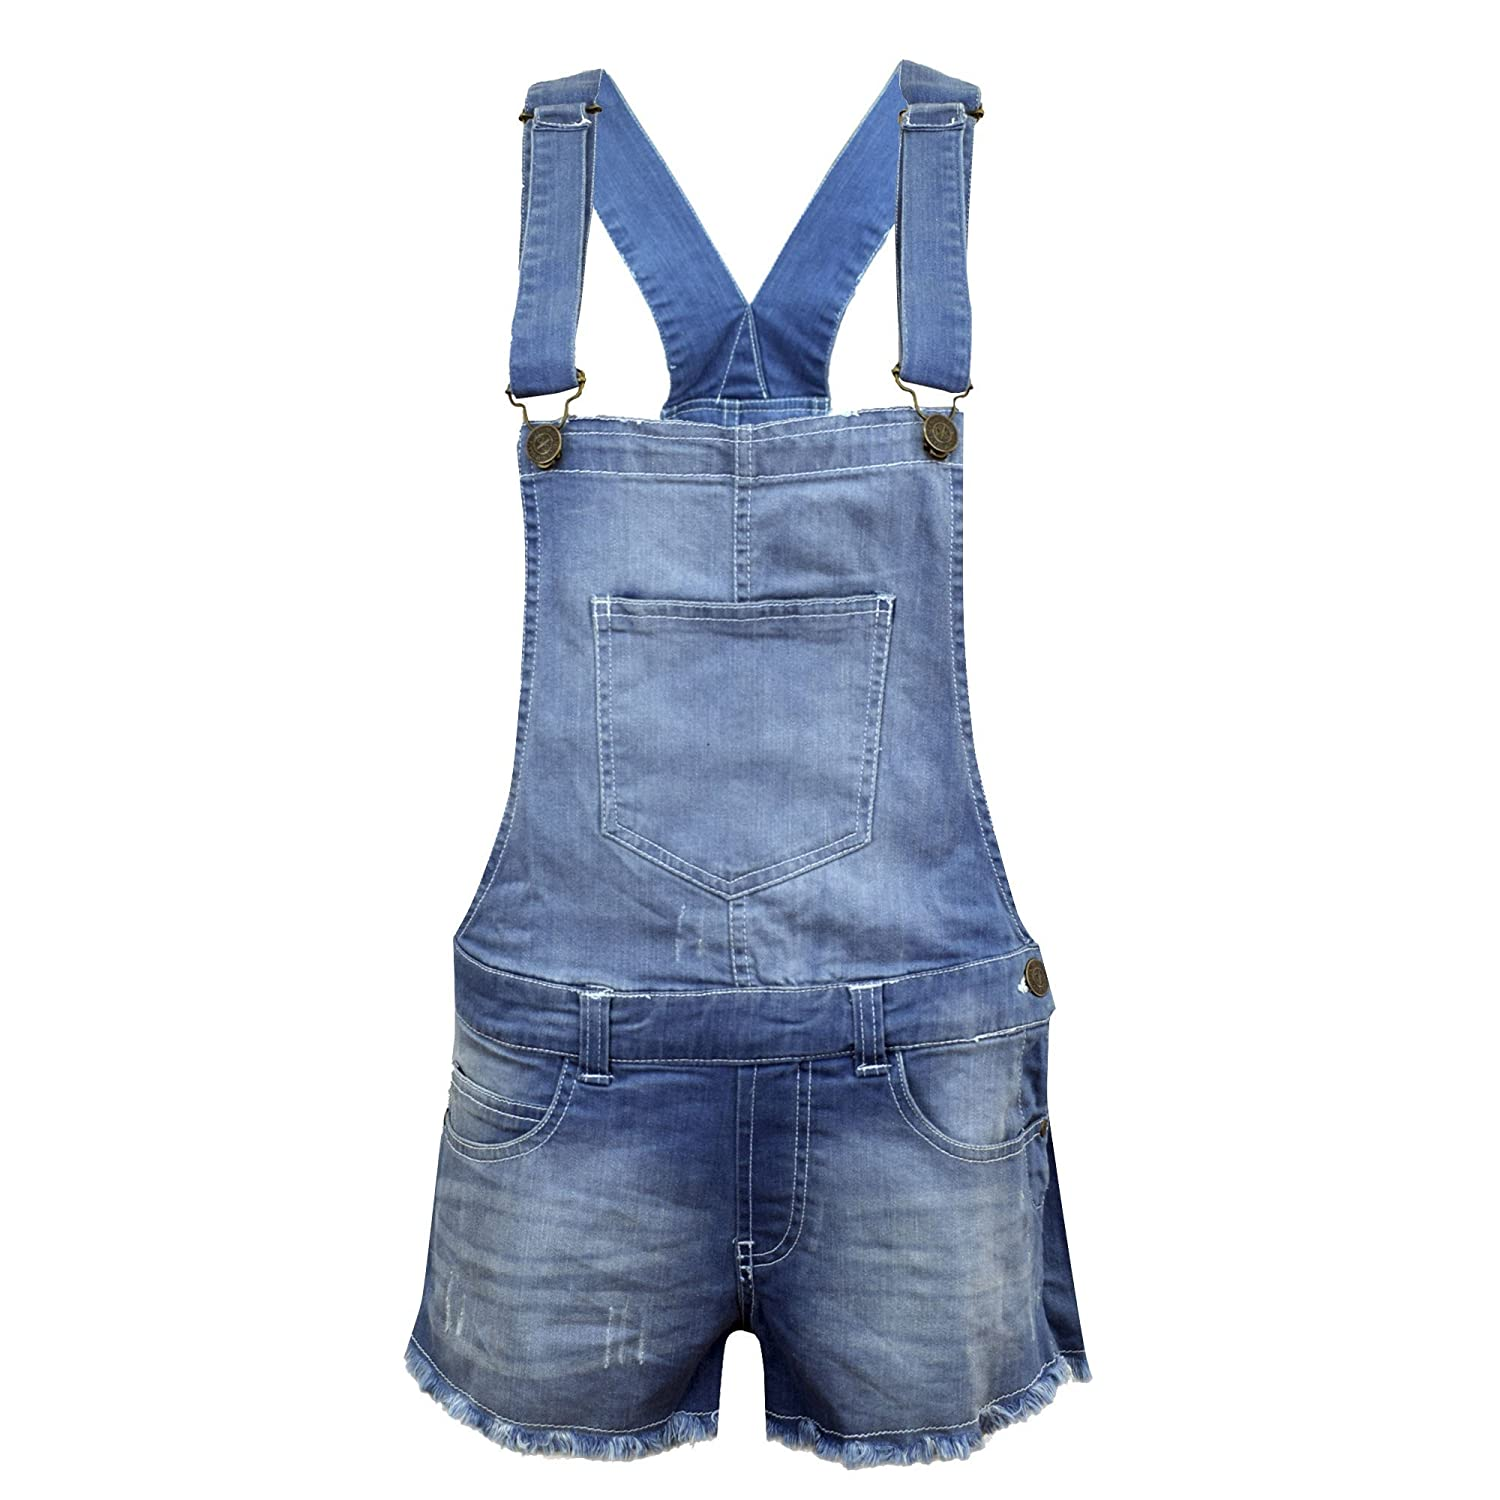 NEW KIDS GIRLS DENIM STRETCH LIGHT WASH PLAYSUIT JUMPSUIT DUNGAREE SHORTS AGE 7-13